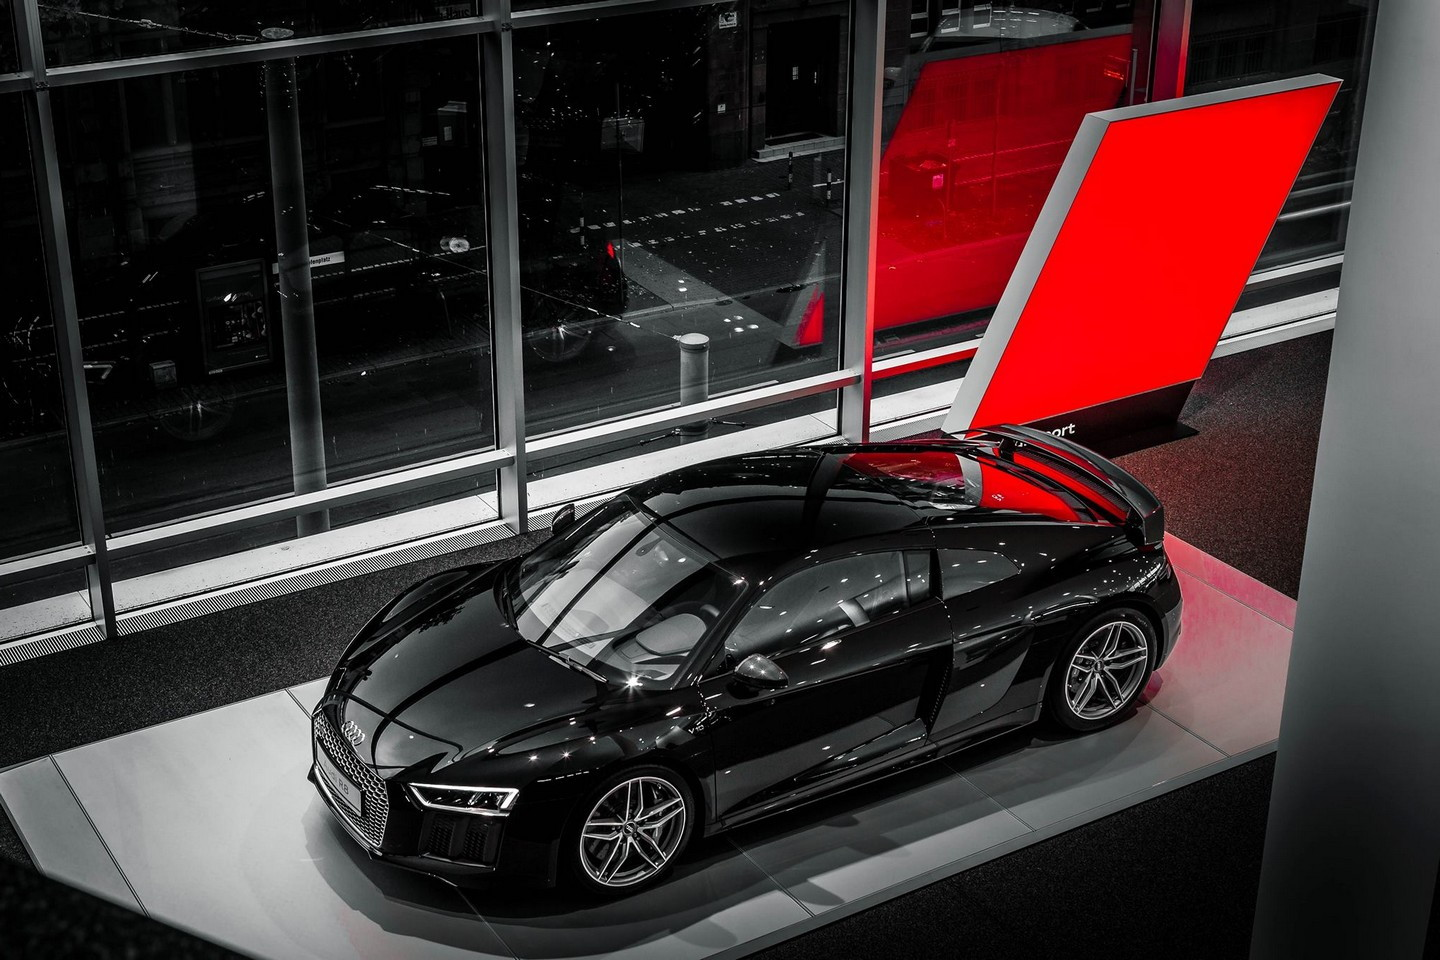 2016 Audi R8 V10 Plus Mythos Black Metalic